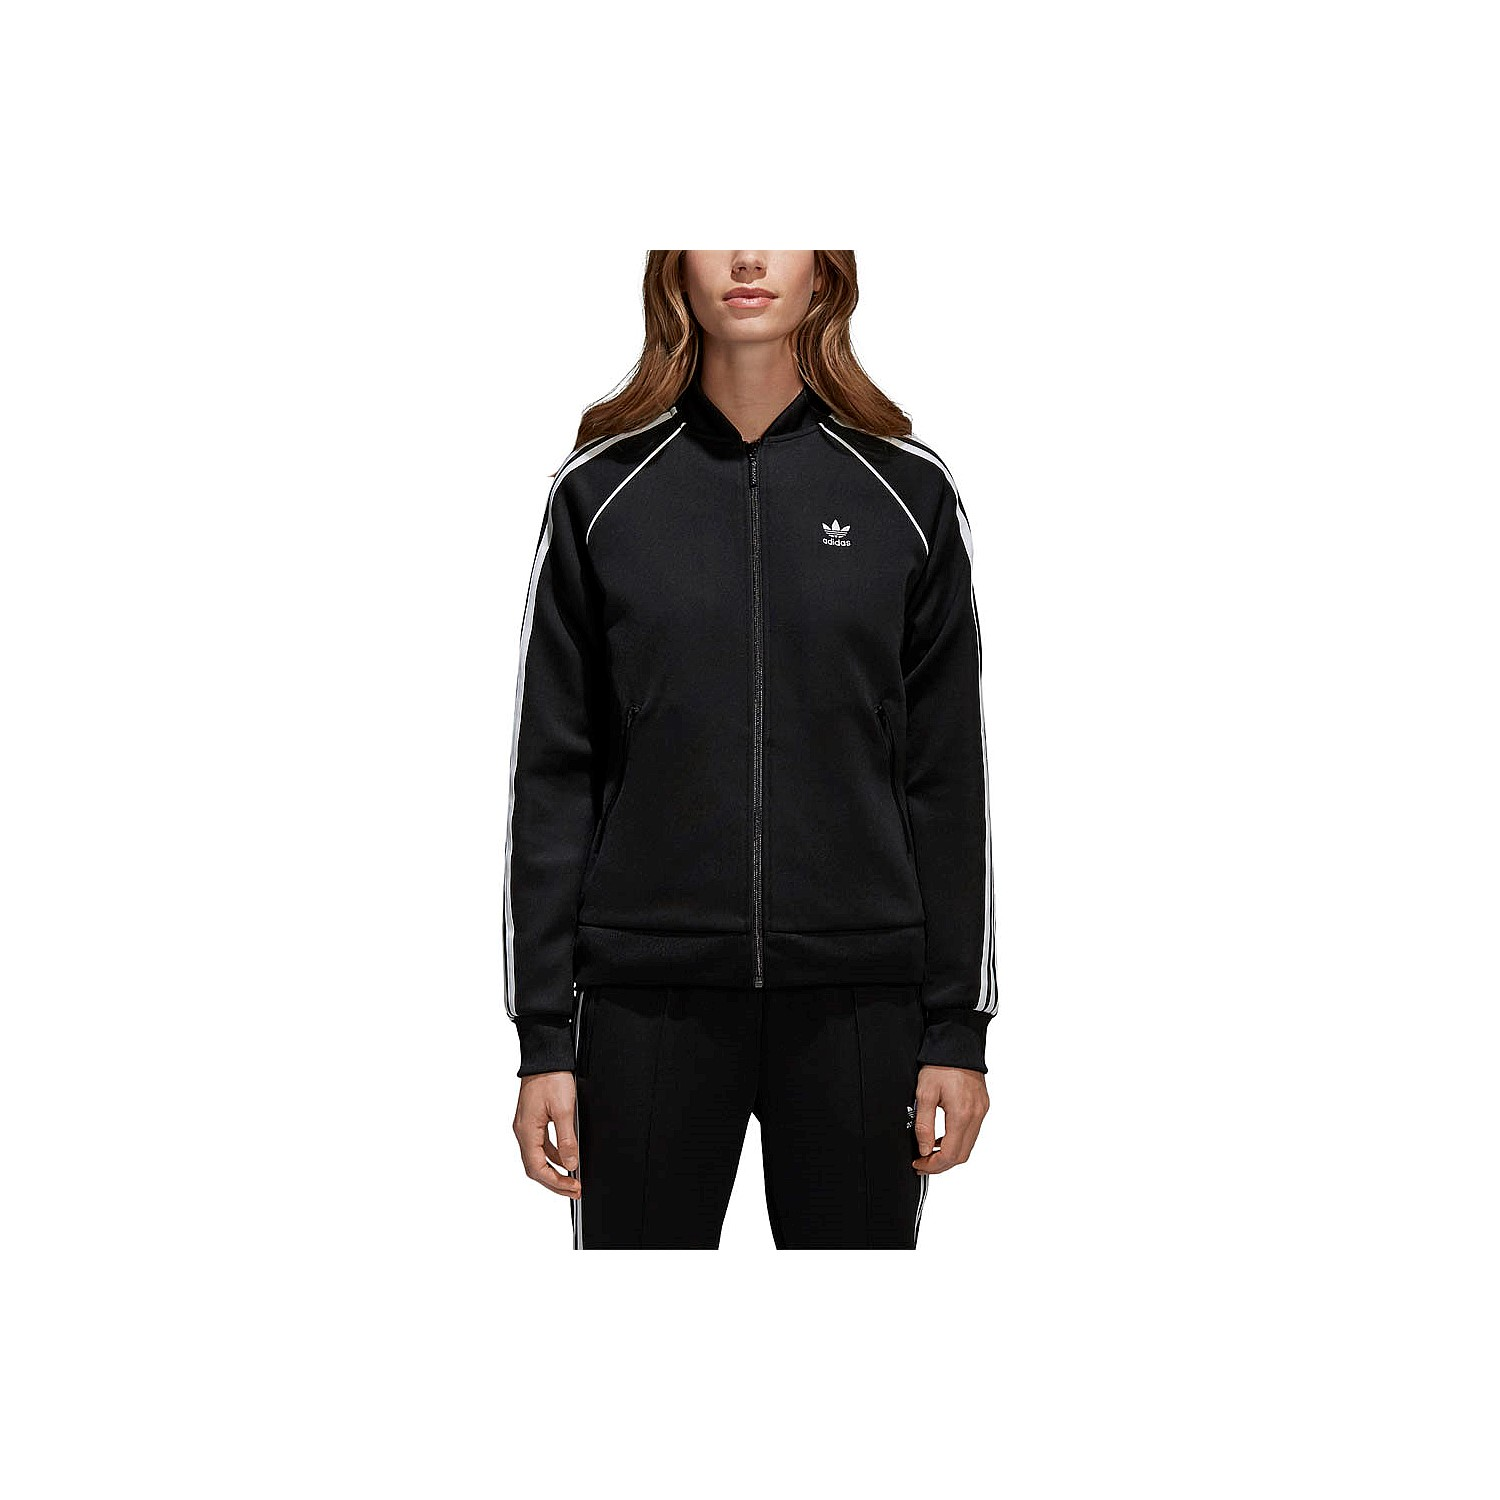 1f284f765 Jackets & Vests - SST Track Jacket